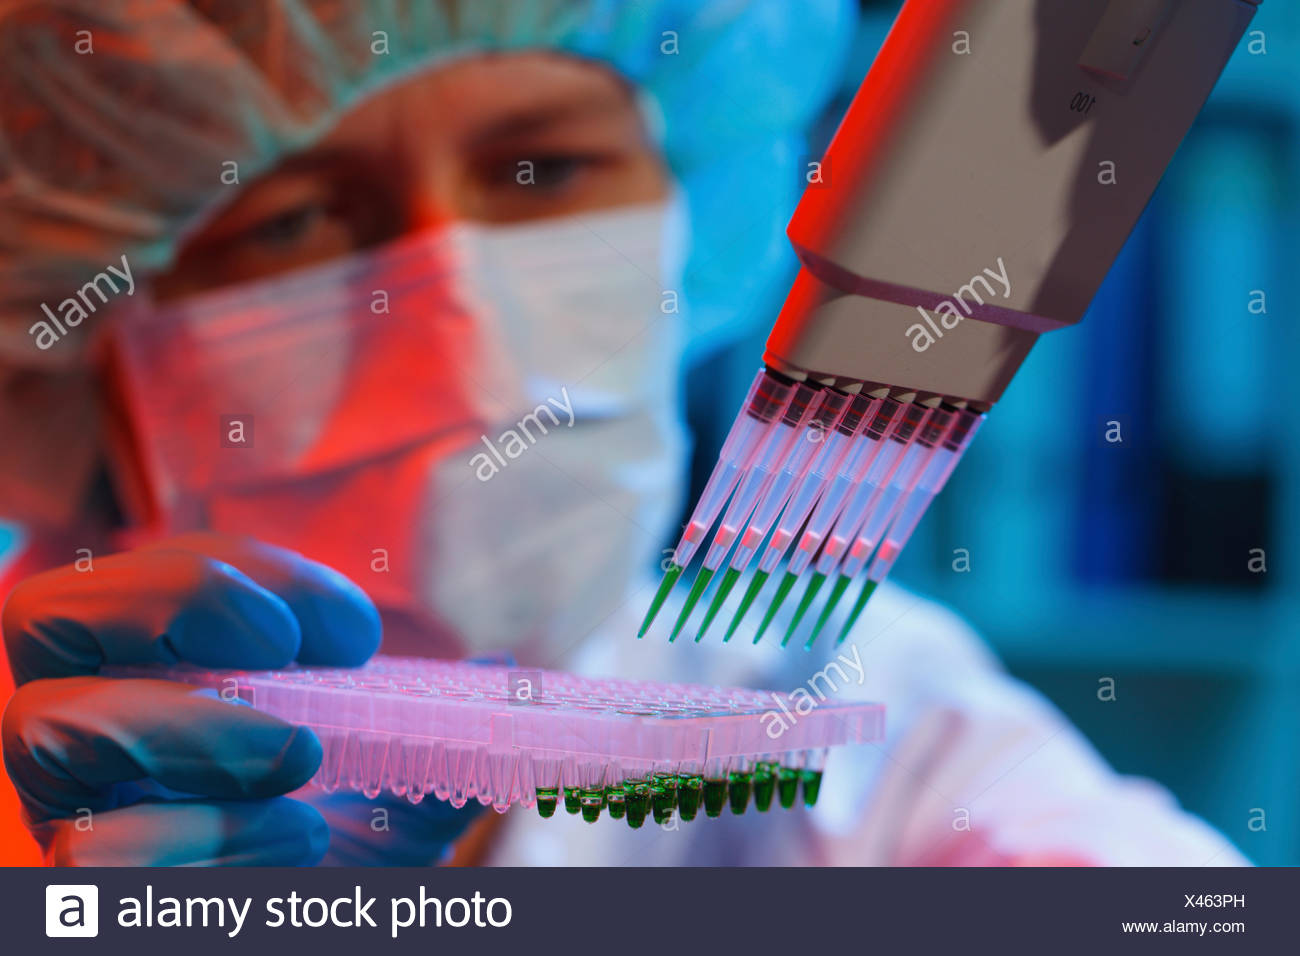 MODEL RELEASED. Lab assistant using multi pipette and multiwell. - Stock Image